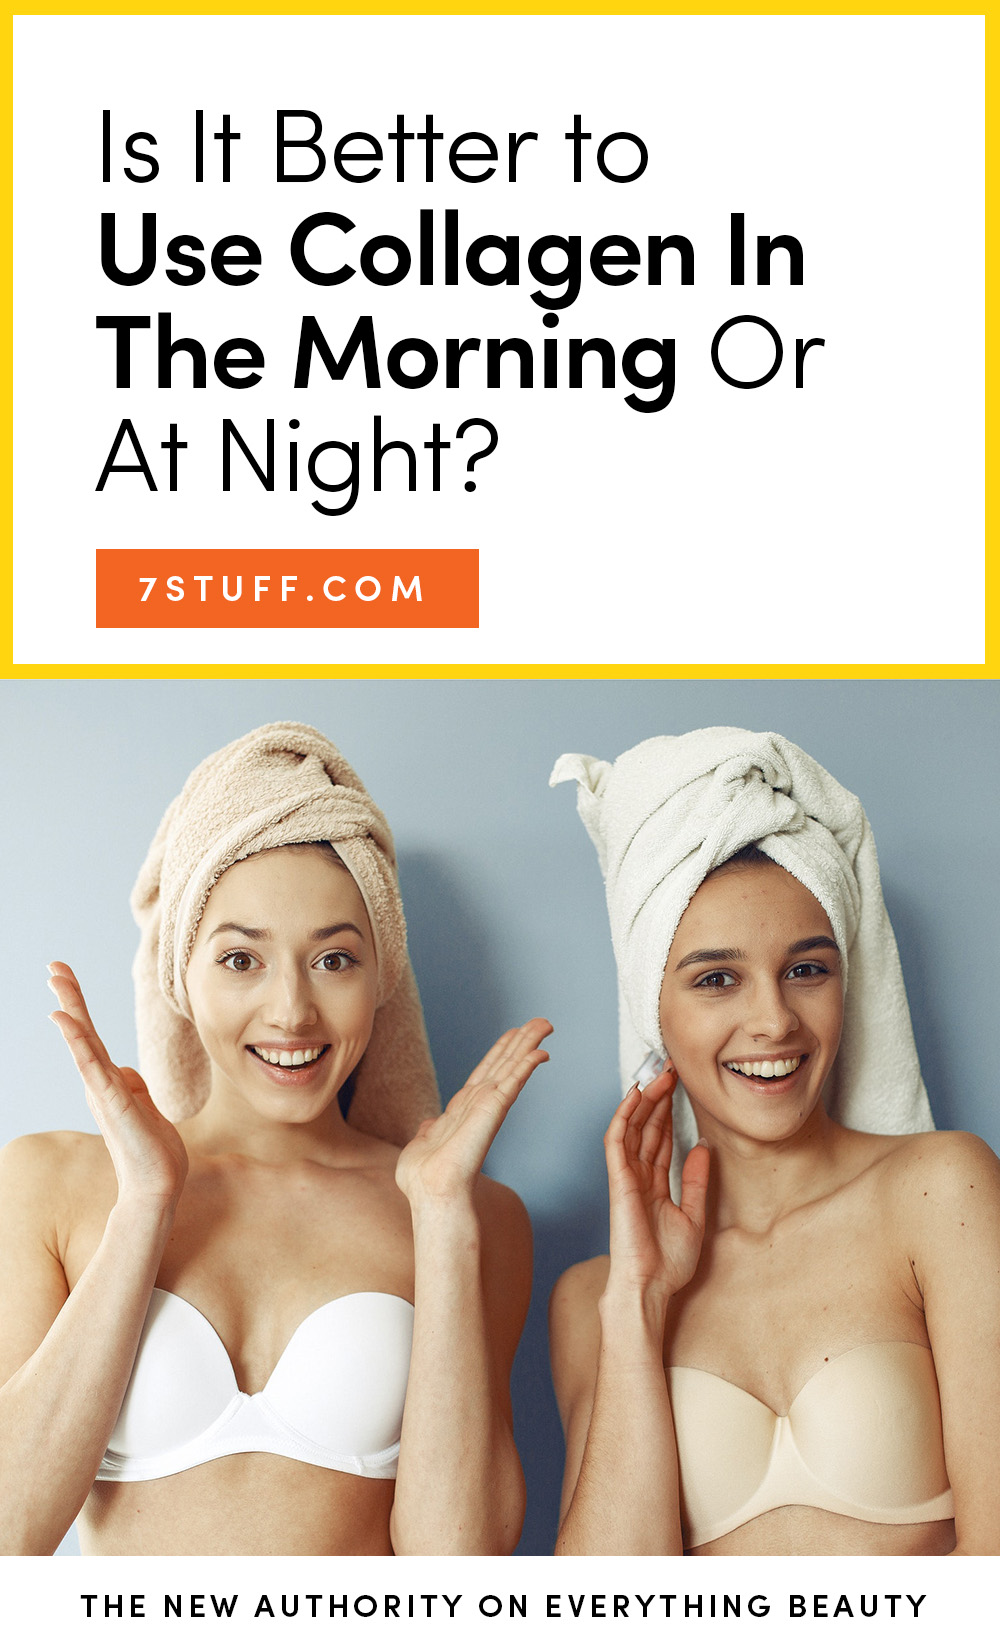 Is It Better to Use Collagen In The Morning Or At Night?